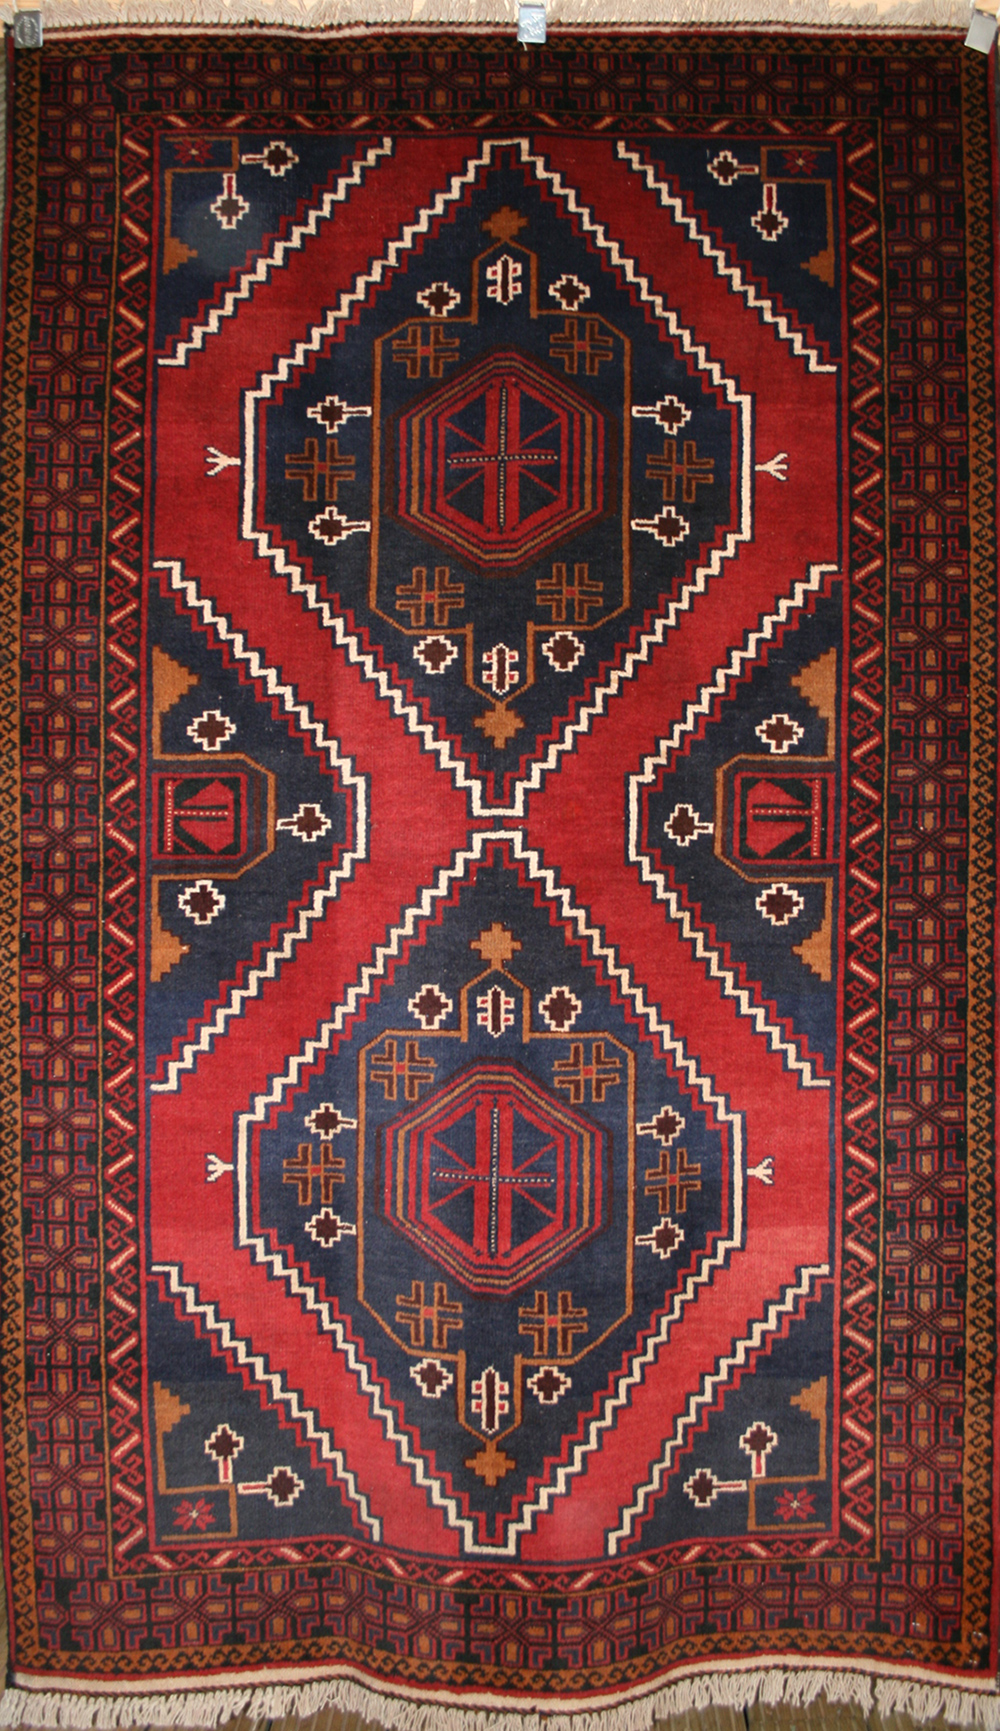 baluch rug origin and description guide